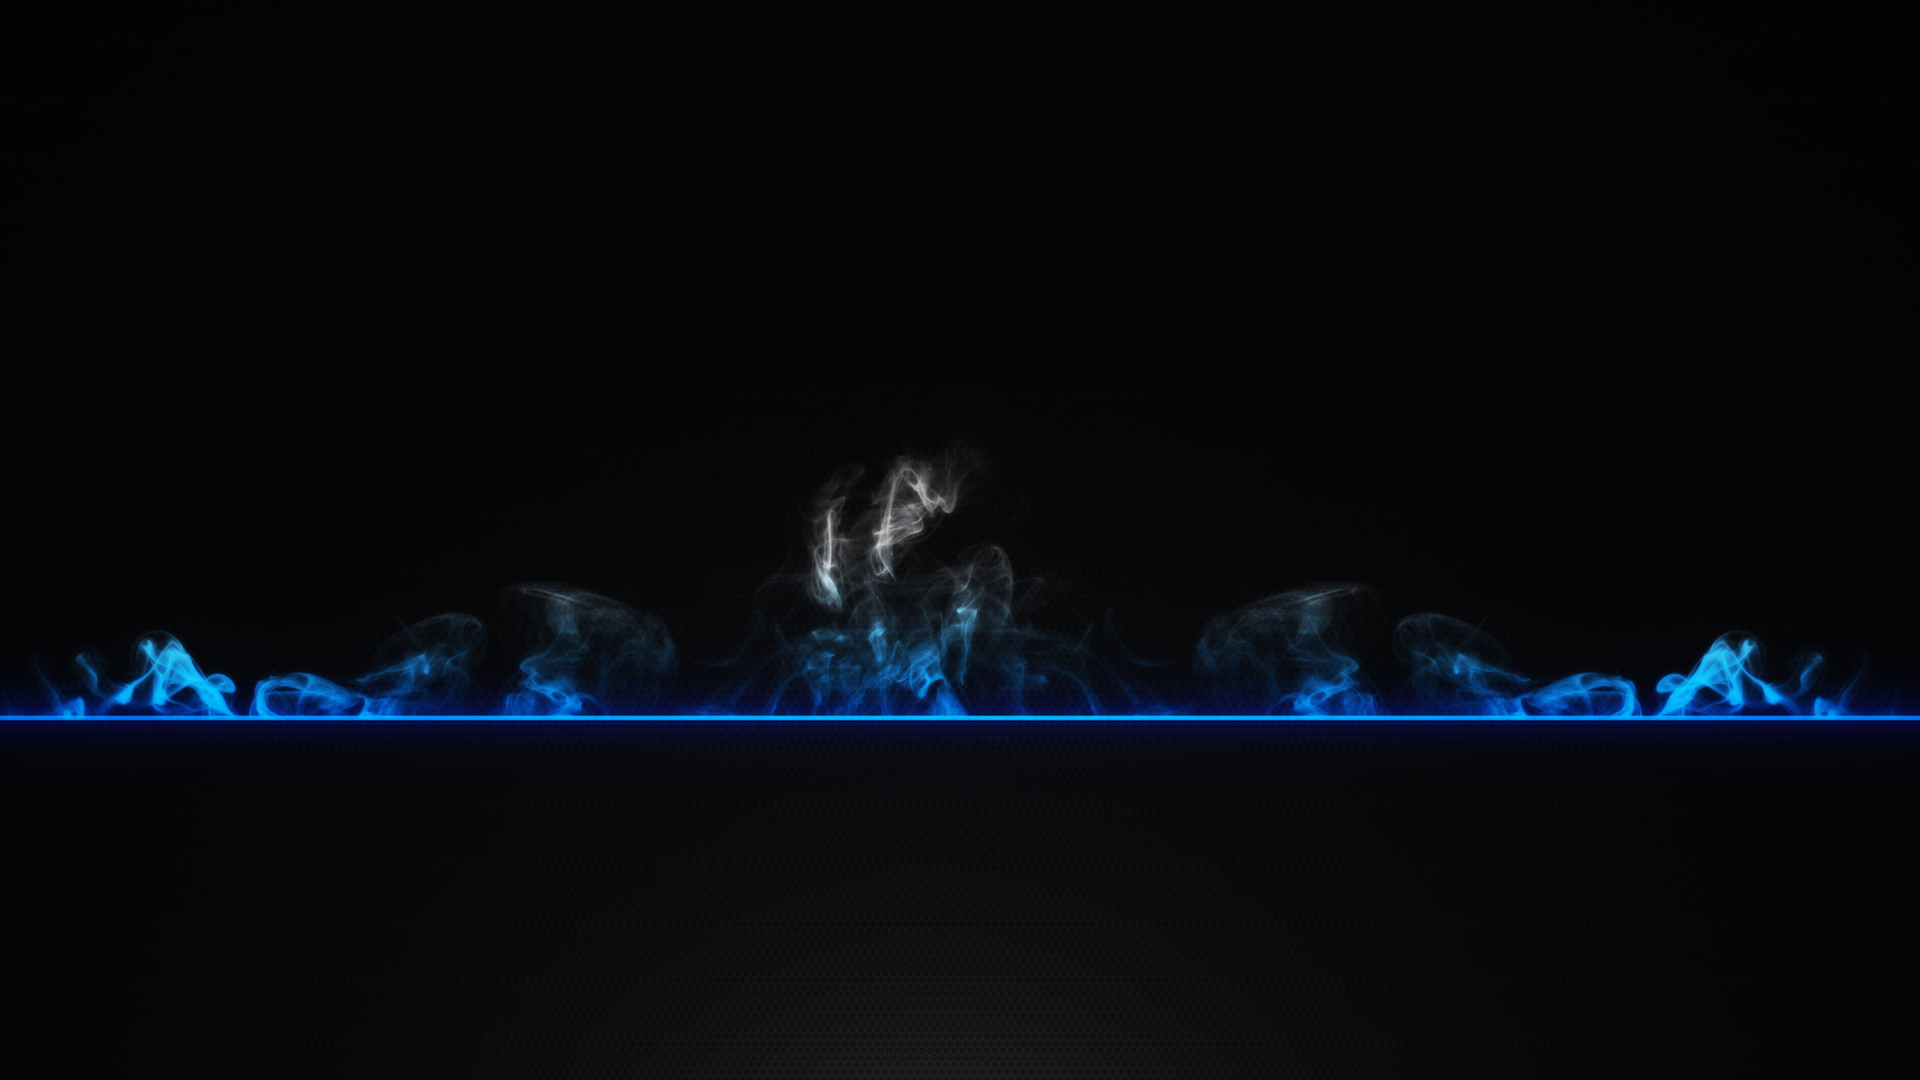 Website design for Wordpress web page Abstract wallpaper